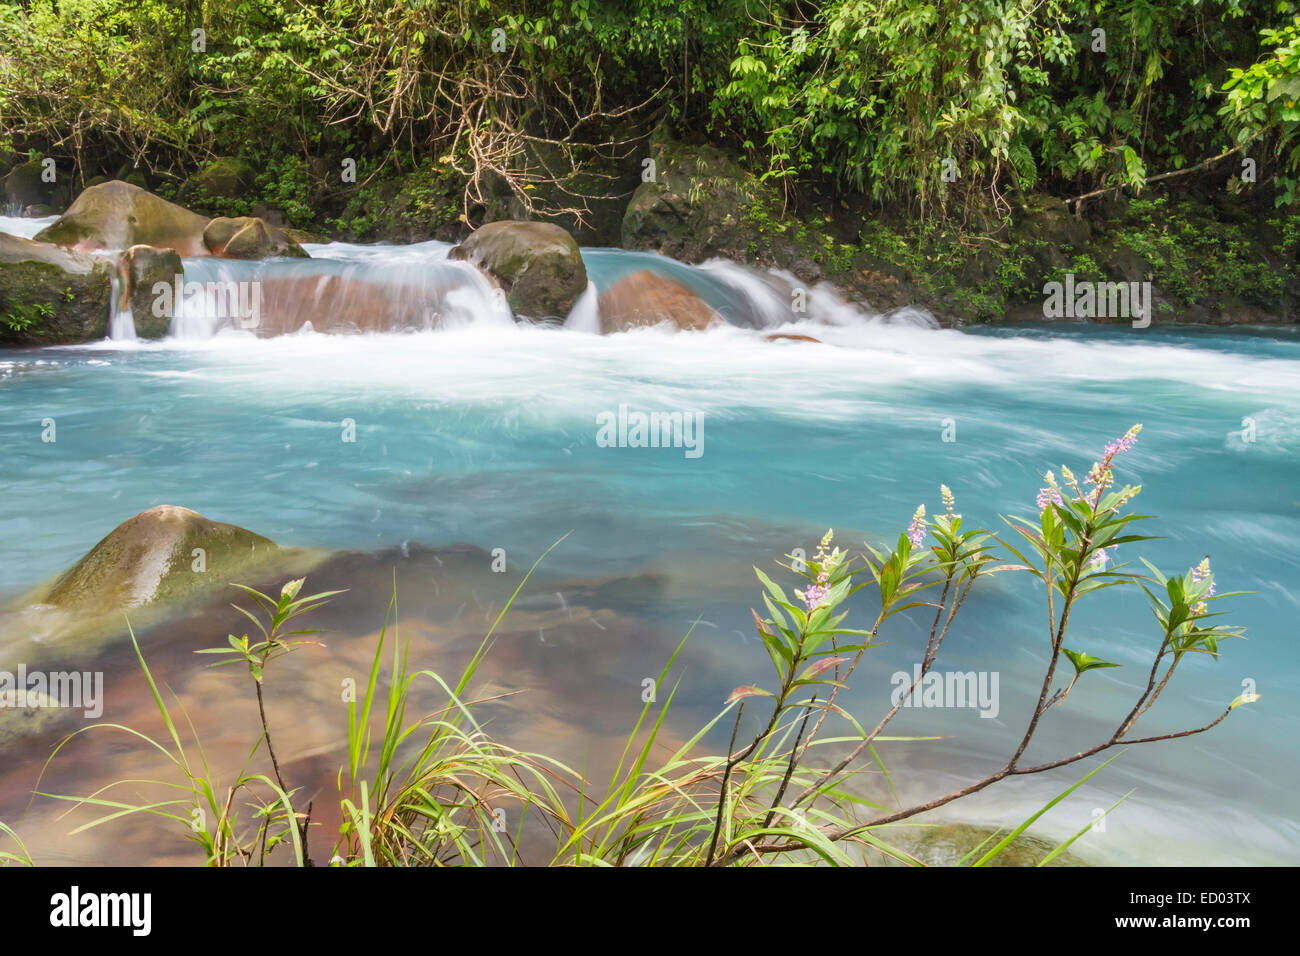 Pink flowers blooming on the banks of the cerulean blue Rio Celeste in Volcan Tenorio National Park in Costa Rica - Stock Image